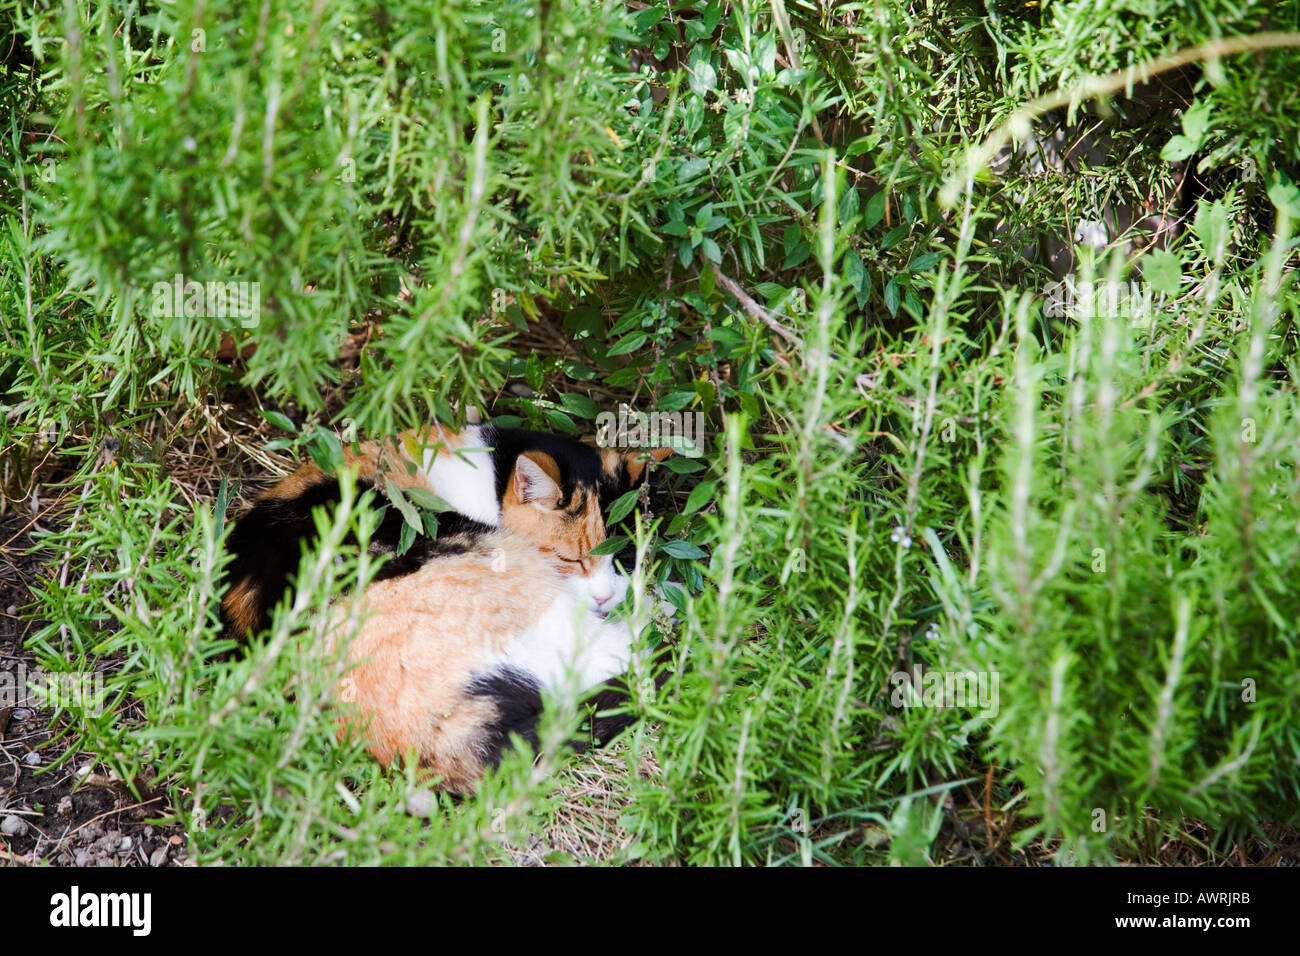 Cat curled up under tall grass Deruta Italy - Stock Image